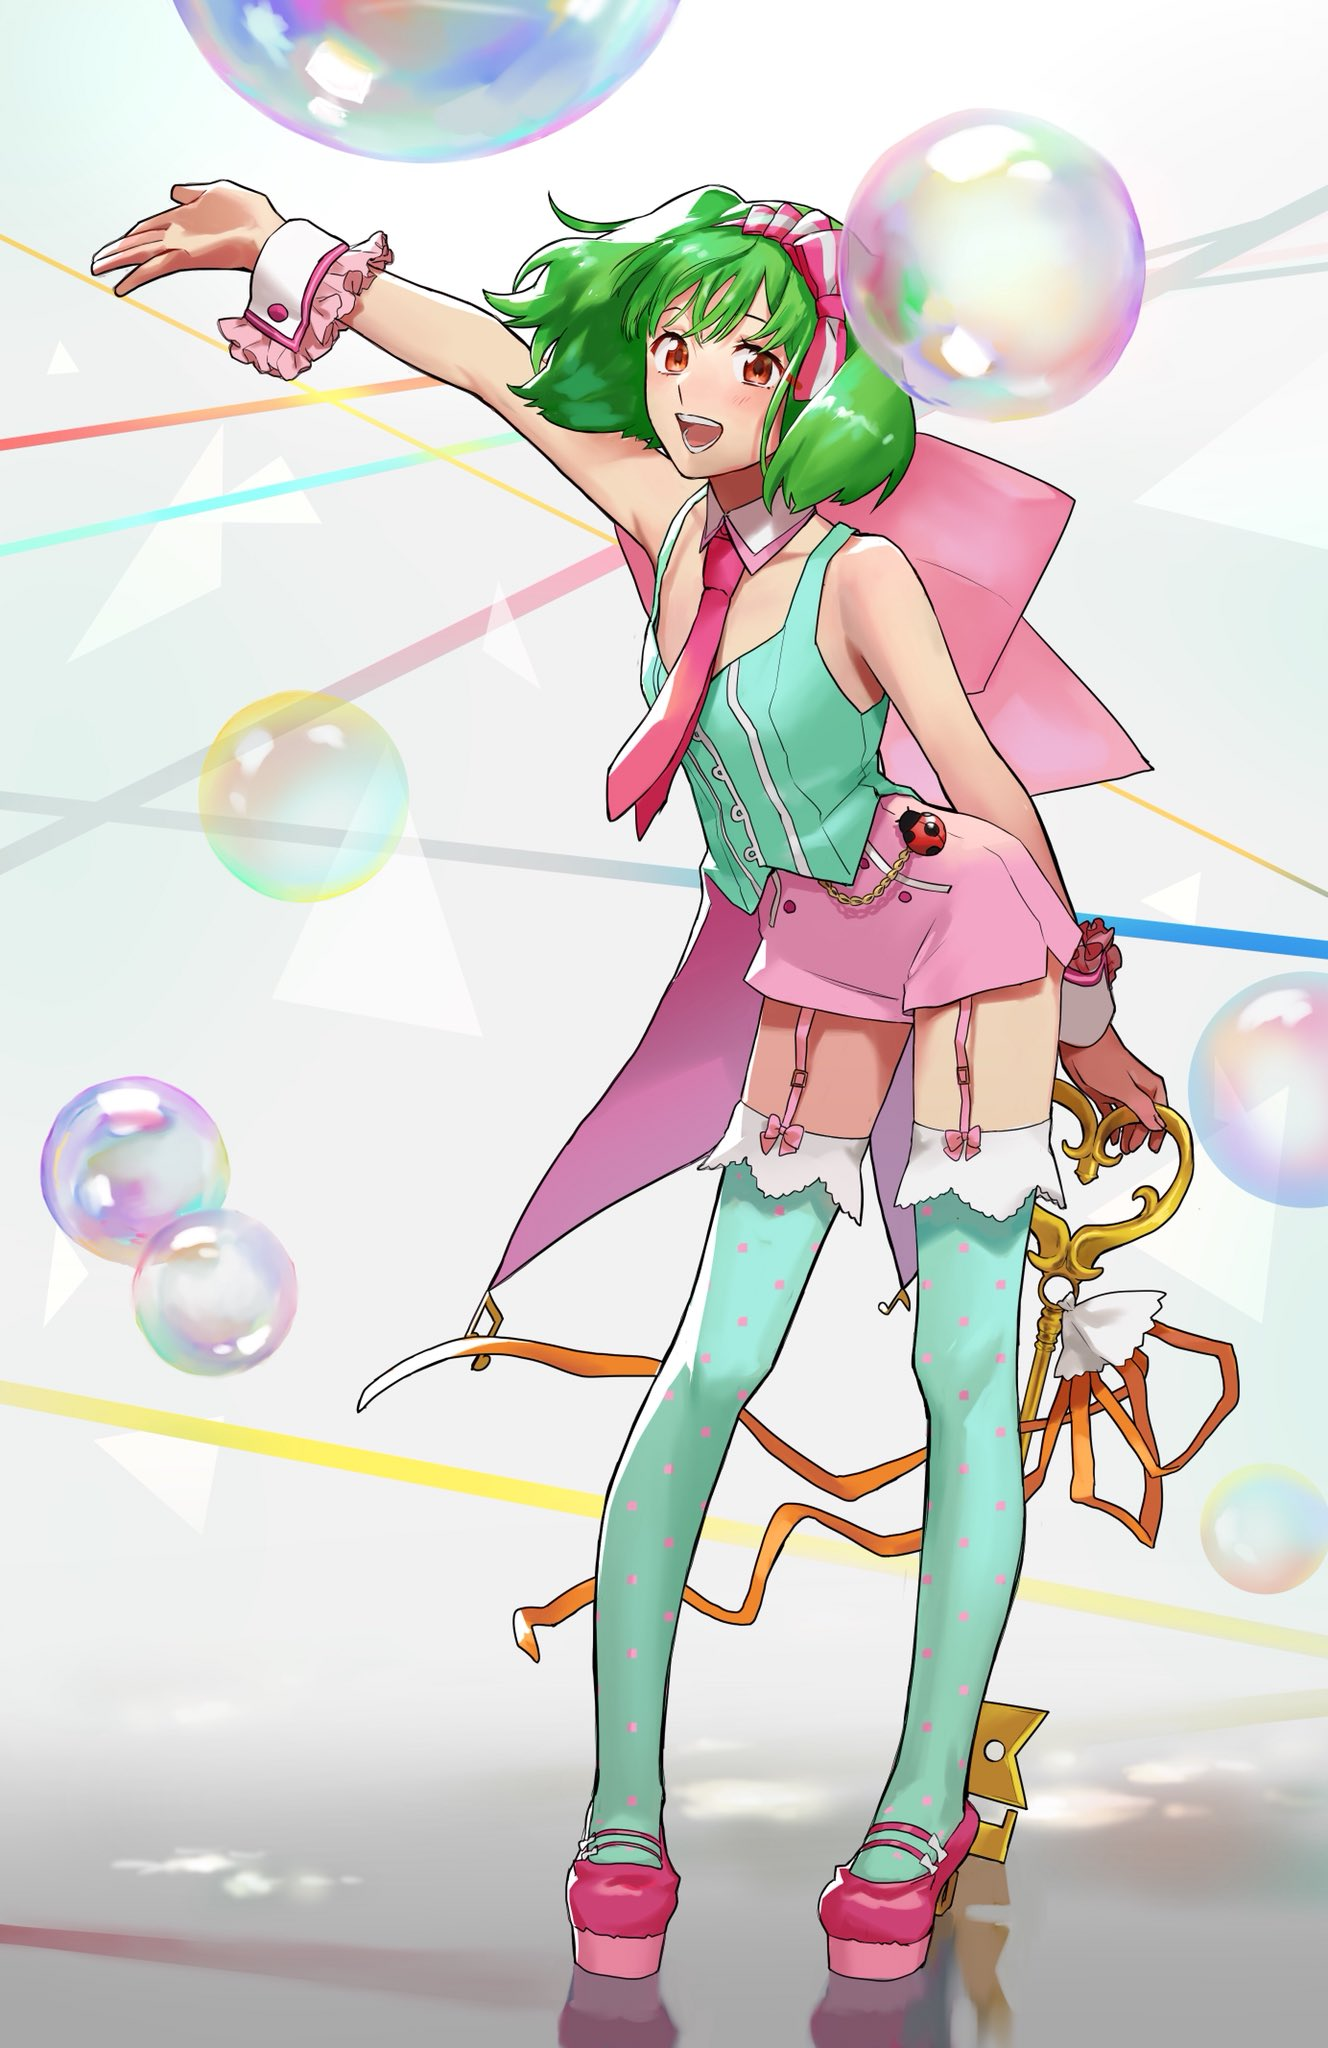 1girl arm_up armpits bare_shoulders bow breasts bubble coattails contrapposto detached_collar frilled_cuffs frills full_body garter_straps green_hair green_shirt hairband high-waist_shorts high_heels highres holding legs looking_at_viewer macross macross_frontier macross_frontier:_sayonara_no_tsubasa necktie open_mouth pink_bow pink_footwear platform_footwear platform_heels pote-mm ranka_lee red_eyes ribbon shirt short_hair short_shorts shorts small_breasts smile solo standing thigh-highs wind wind_lift wrist_cuffs